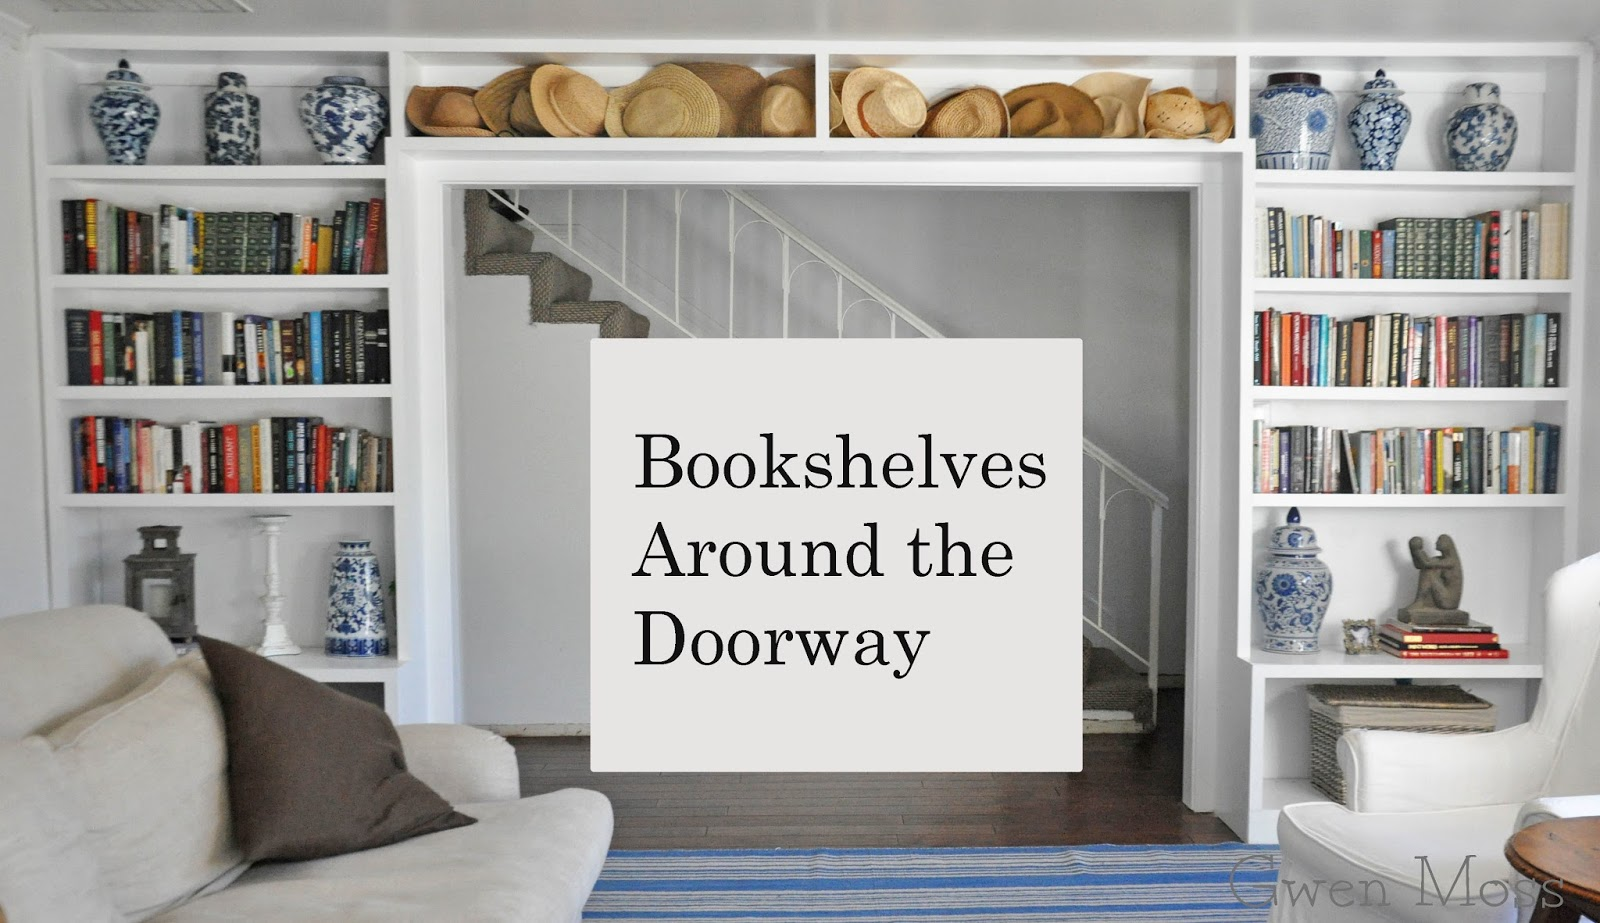 Gwen Moss: My Living Room Update- adding built-in bookshelves